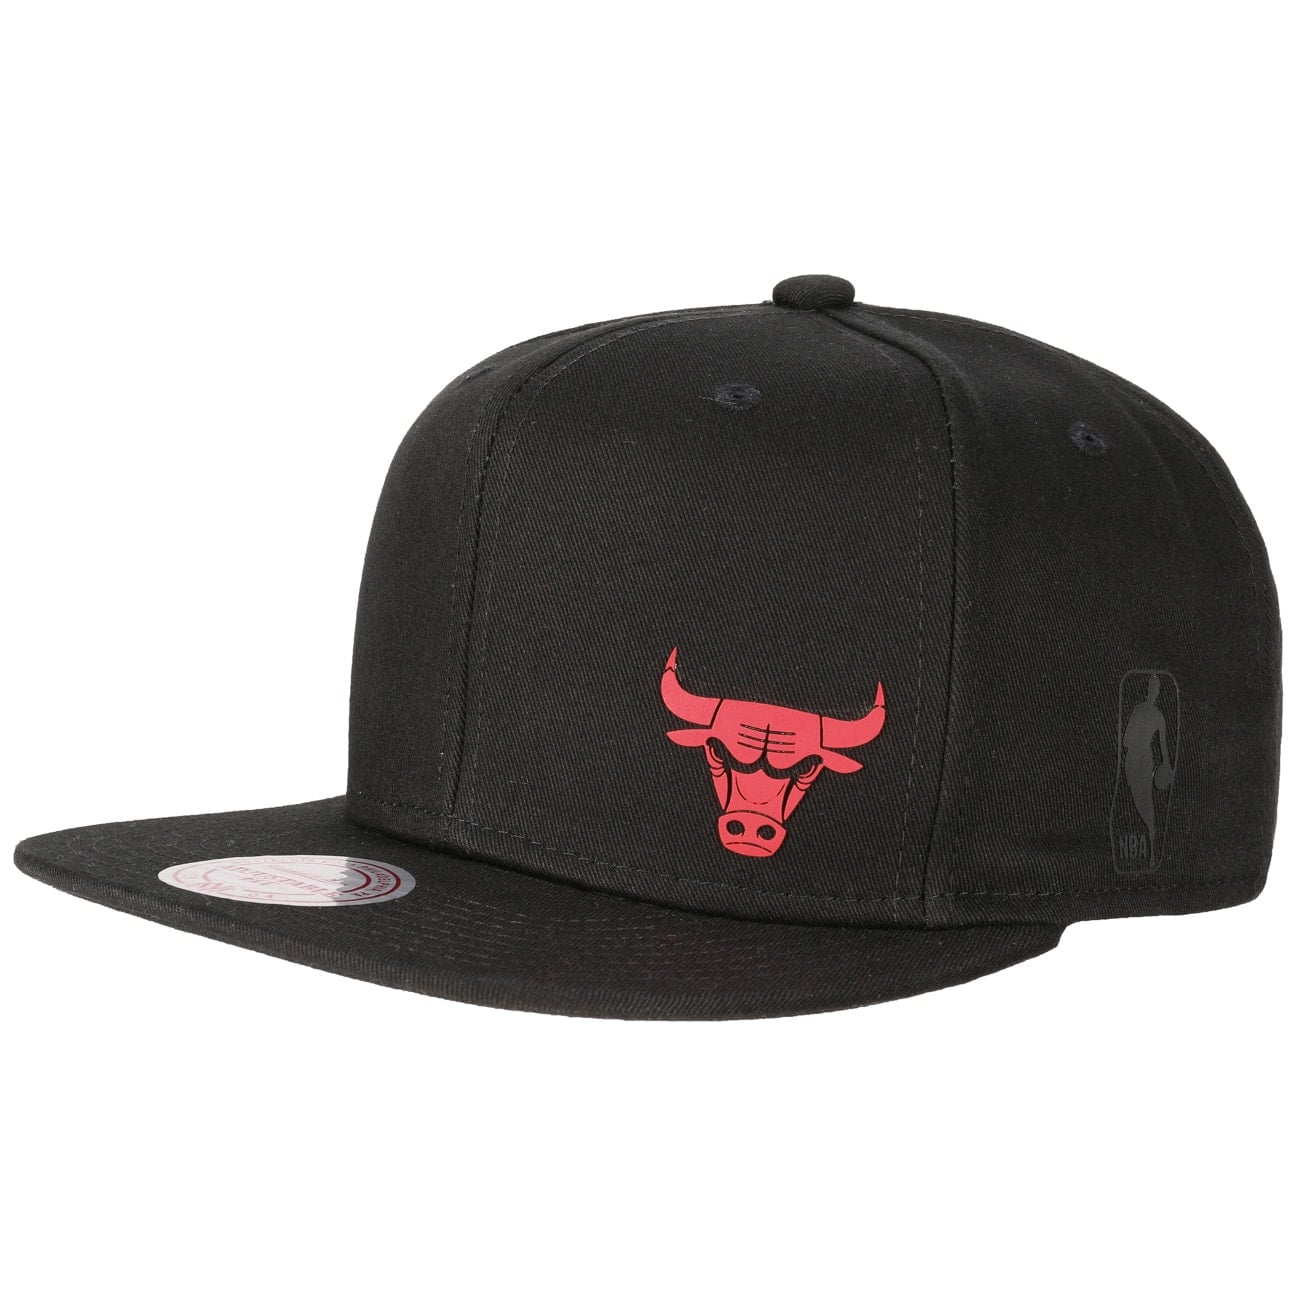 Absolute Bulls Cap by Mitchell & Ness  gorra de baseball